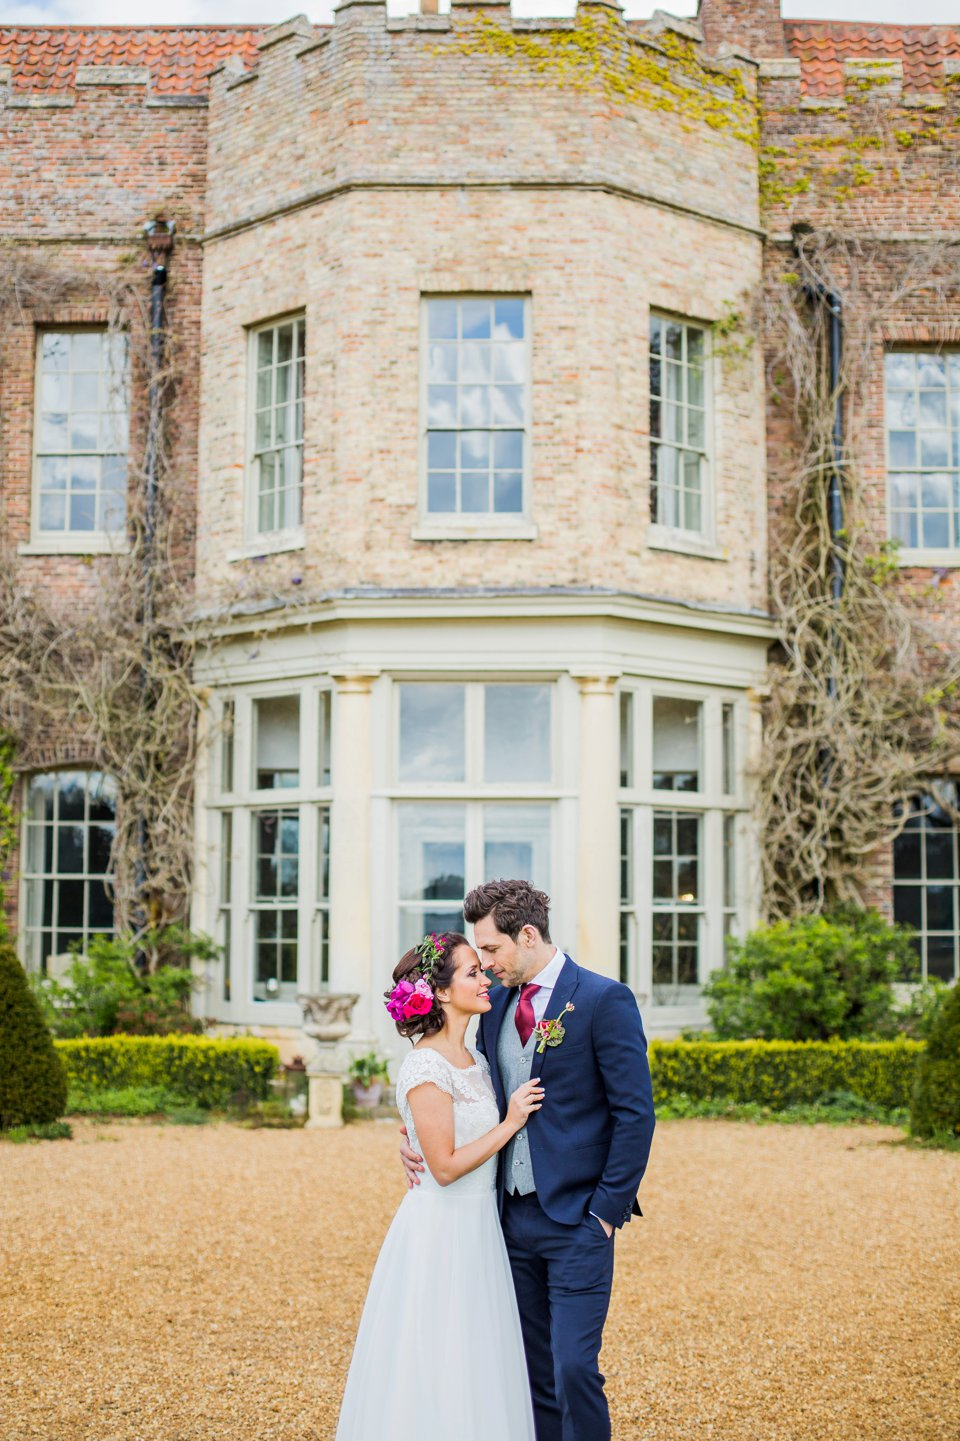 Narborough Hall gardens_ Norfolk wedding venue_rustic_boho_burgundy_loose flowers_floral crown_calligraphy_tatum reid photography (90)